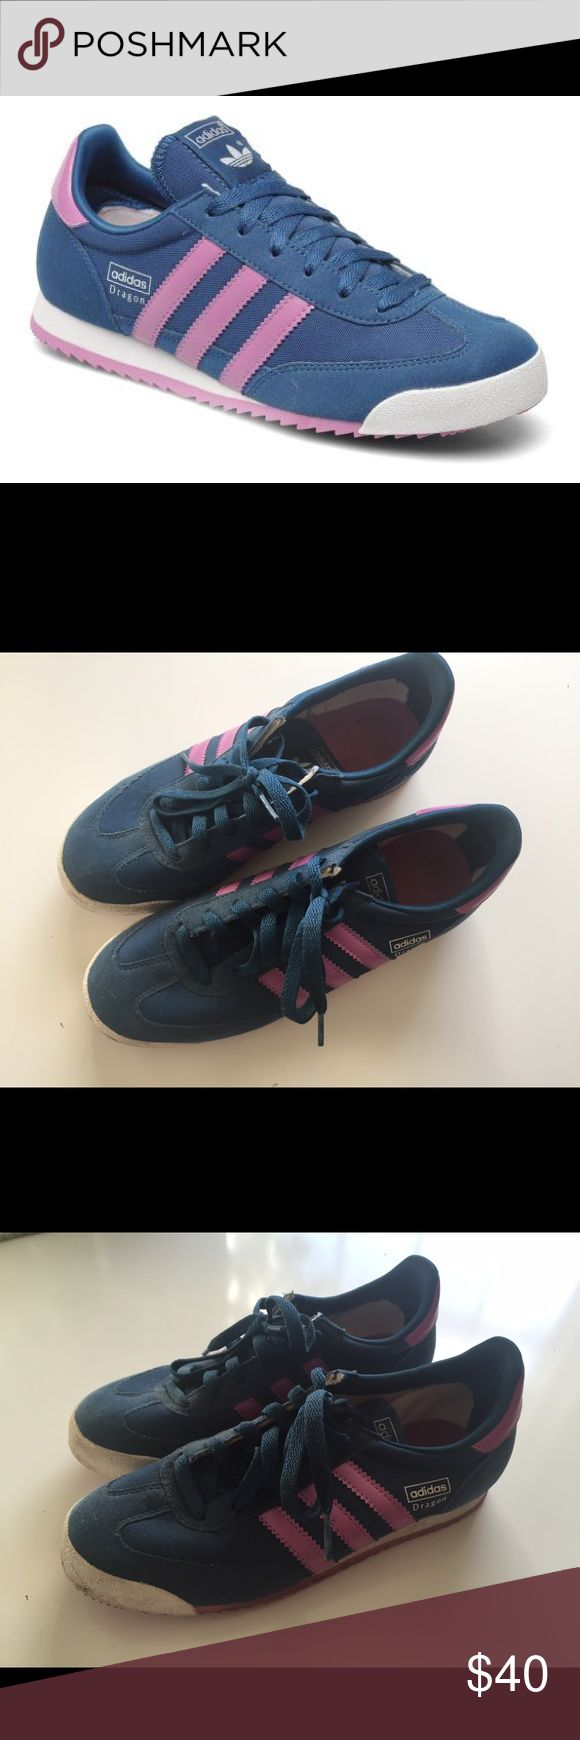 adidas Originals Dragon W size 7 adidas Originals Dragon Worn just a couple of times, like-new condition, color combo no longer available COLOR: TEAL/FUCHSIA SIZE: 7 WIDTH: B - MEDIUM Adidas Shoes Sneakers